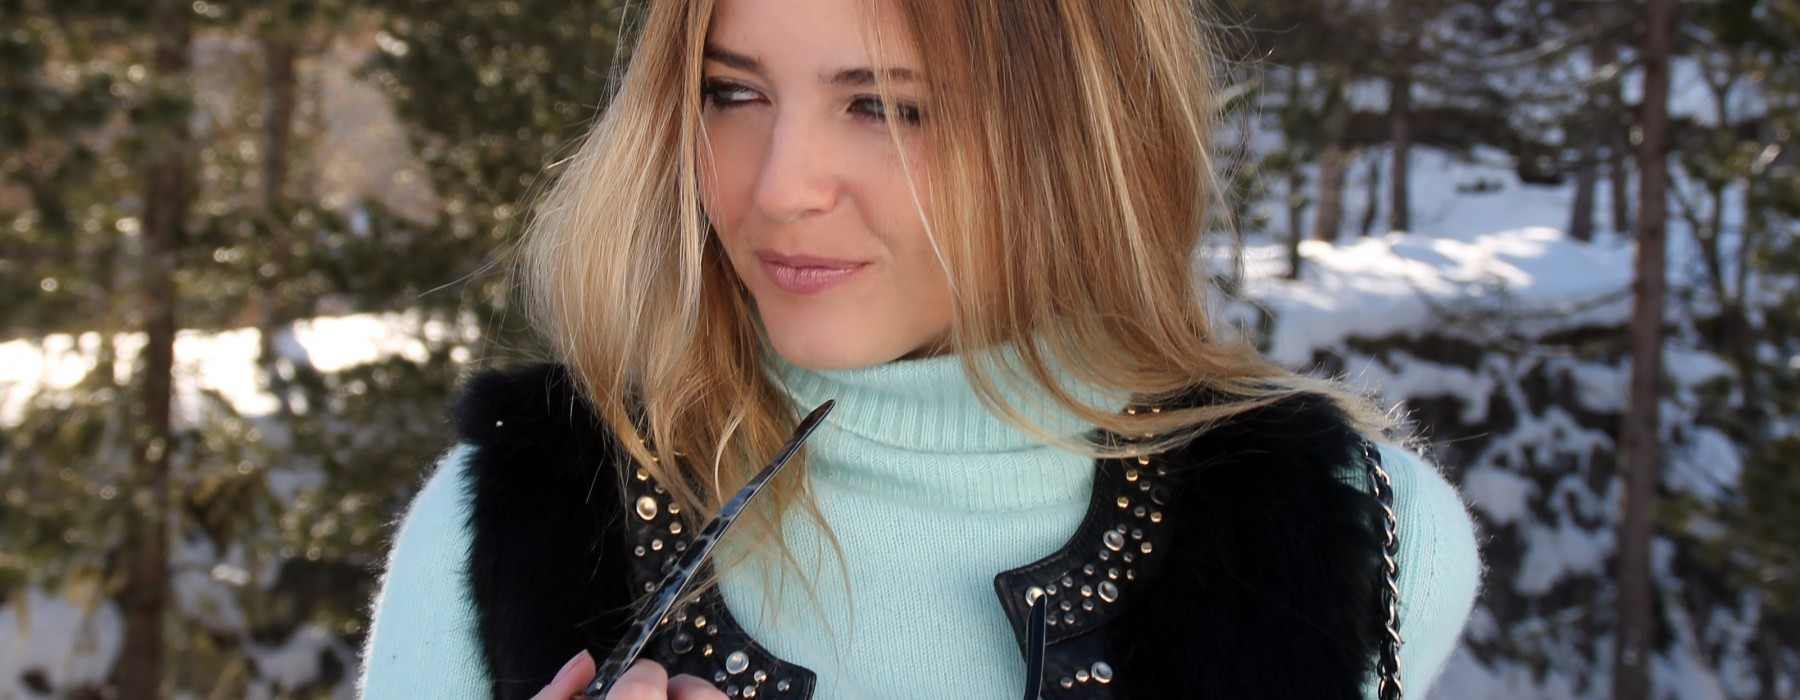 Turquoise Sweater on the Snow